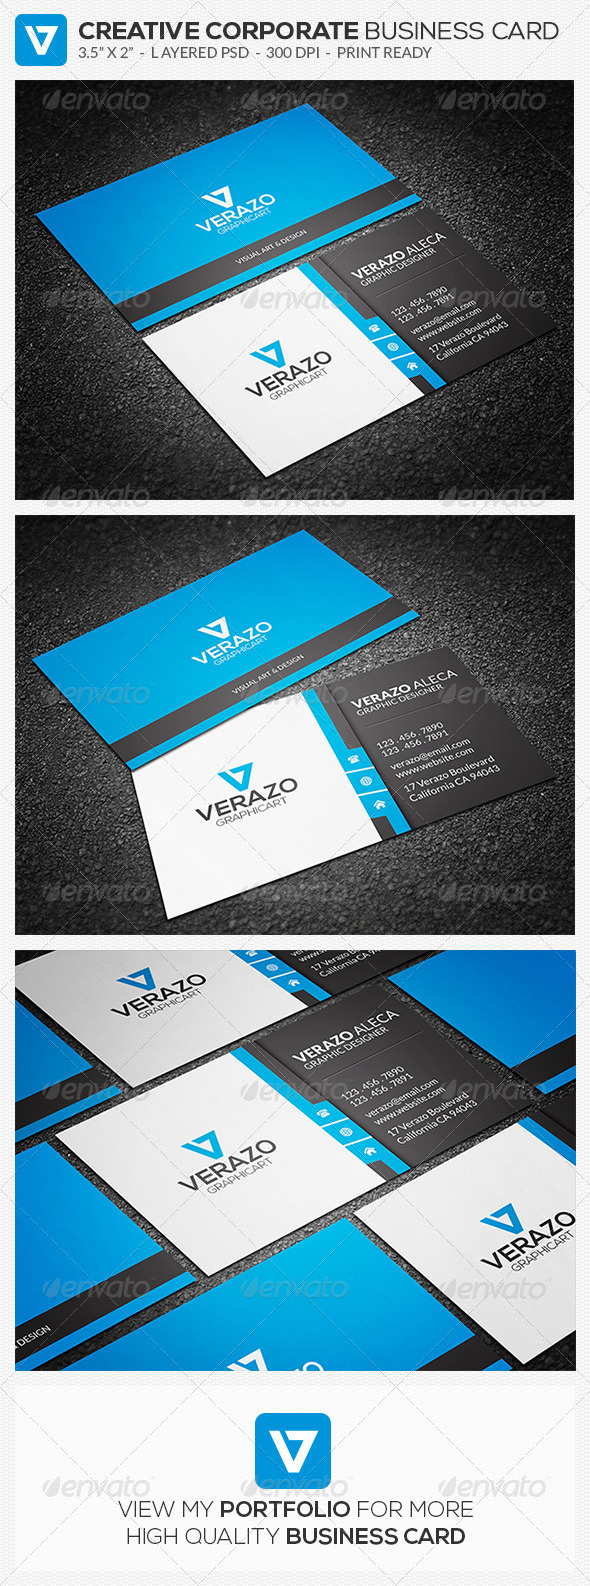 GraphicRiver Creative Corporate Business Card 57 8727467